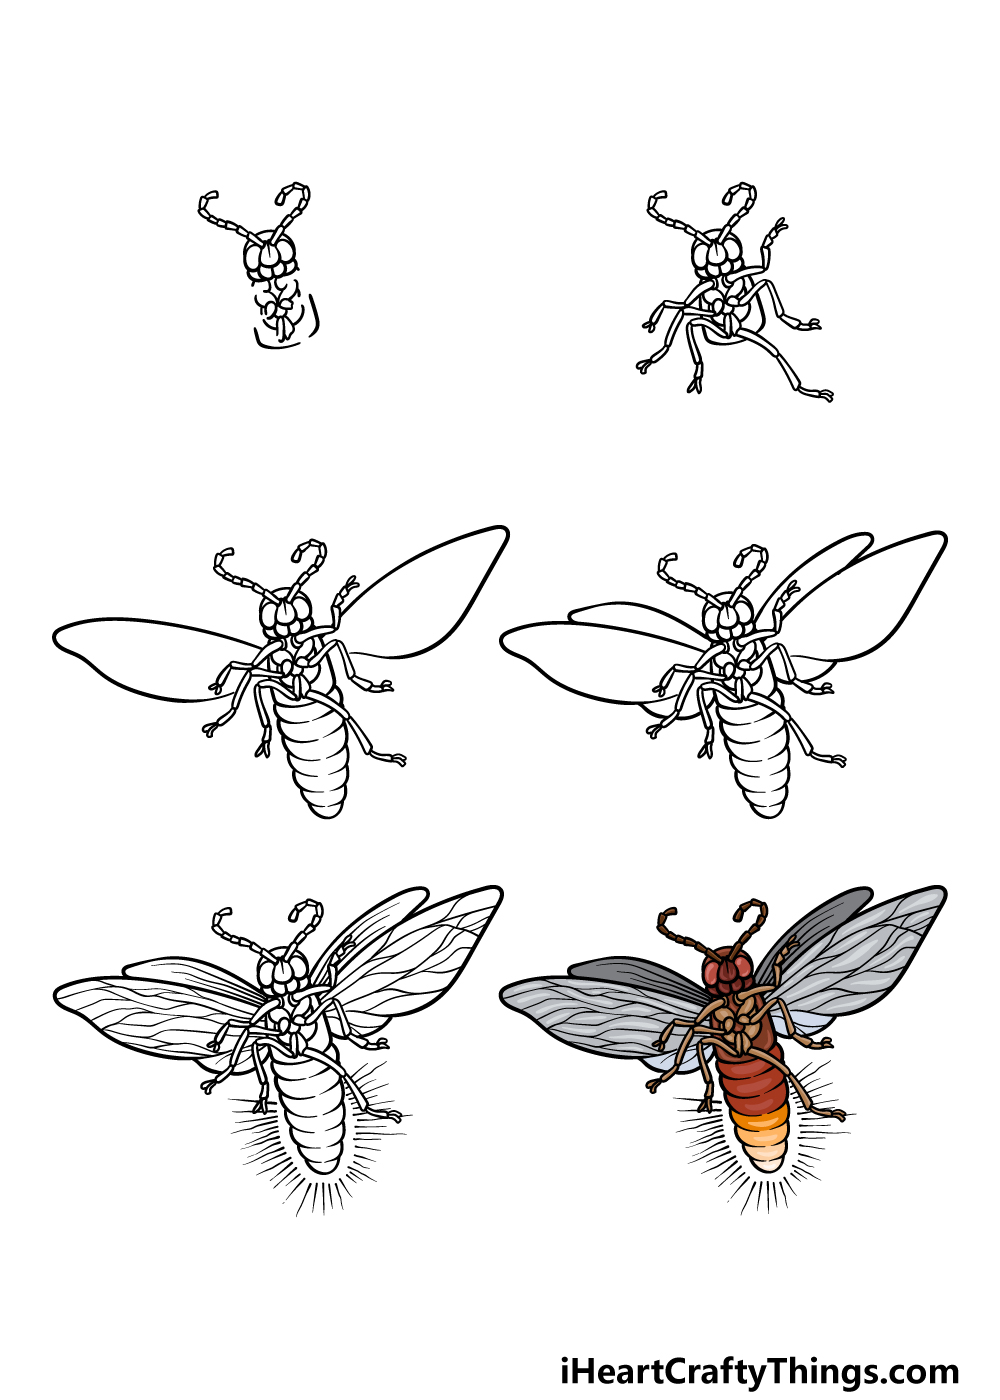 how to draw a firefly in 6 steps